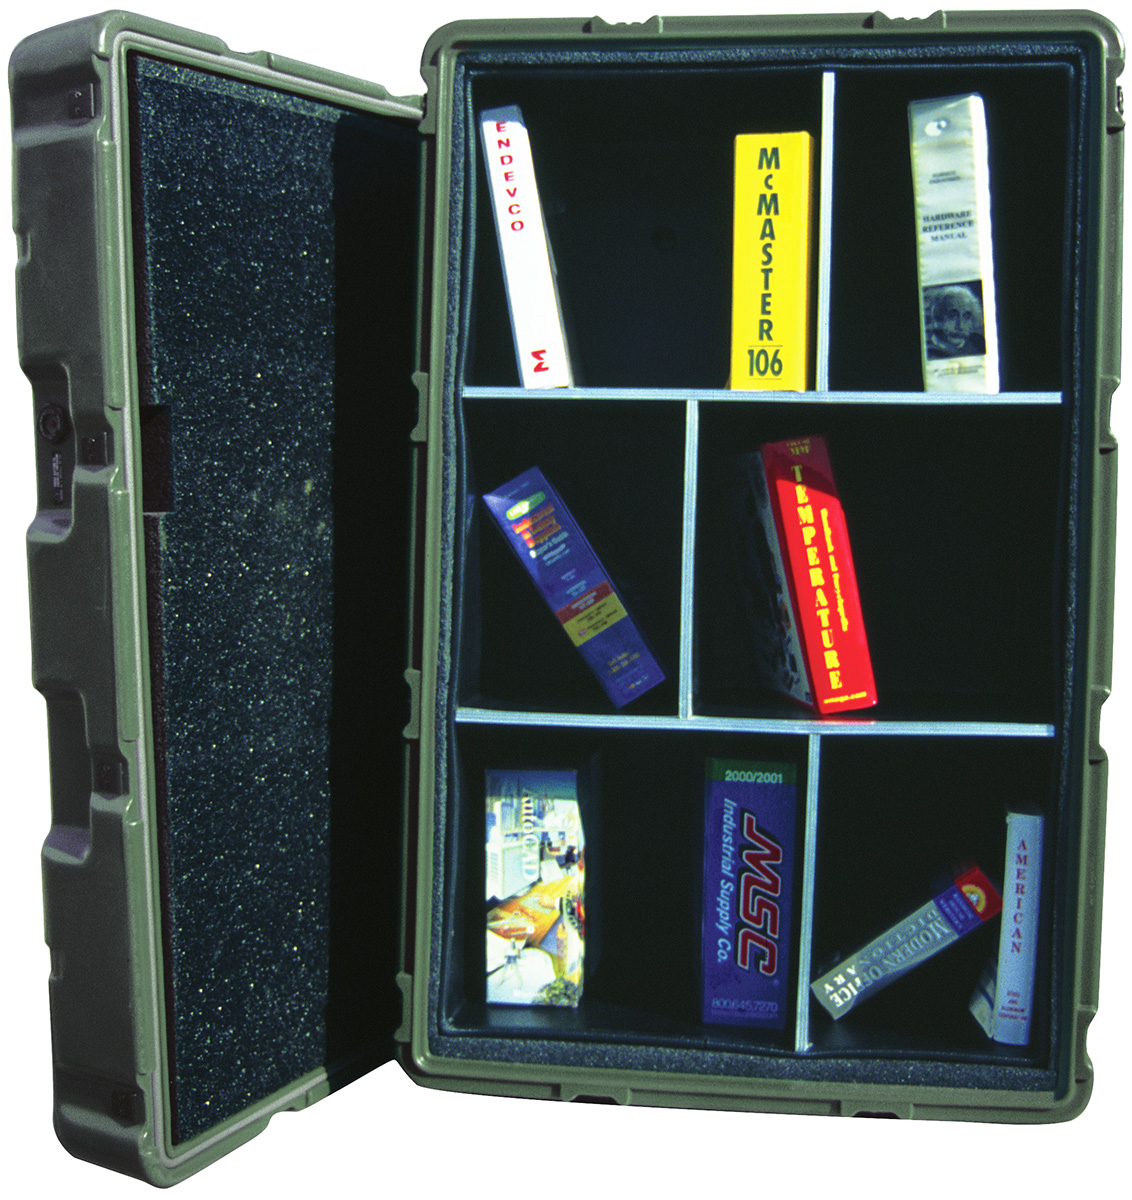 pelican peli products 472 BKSH 100 usa military mobile bookshelf